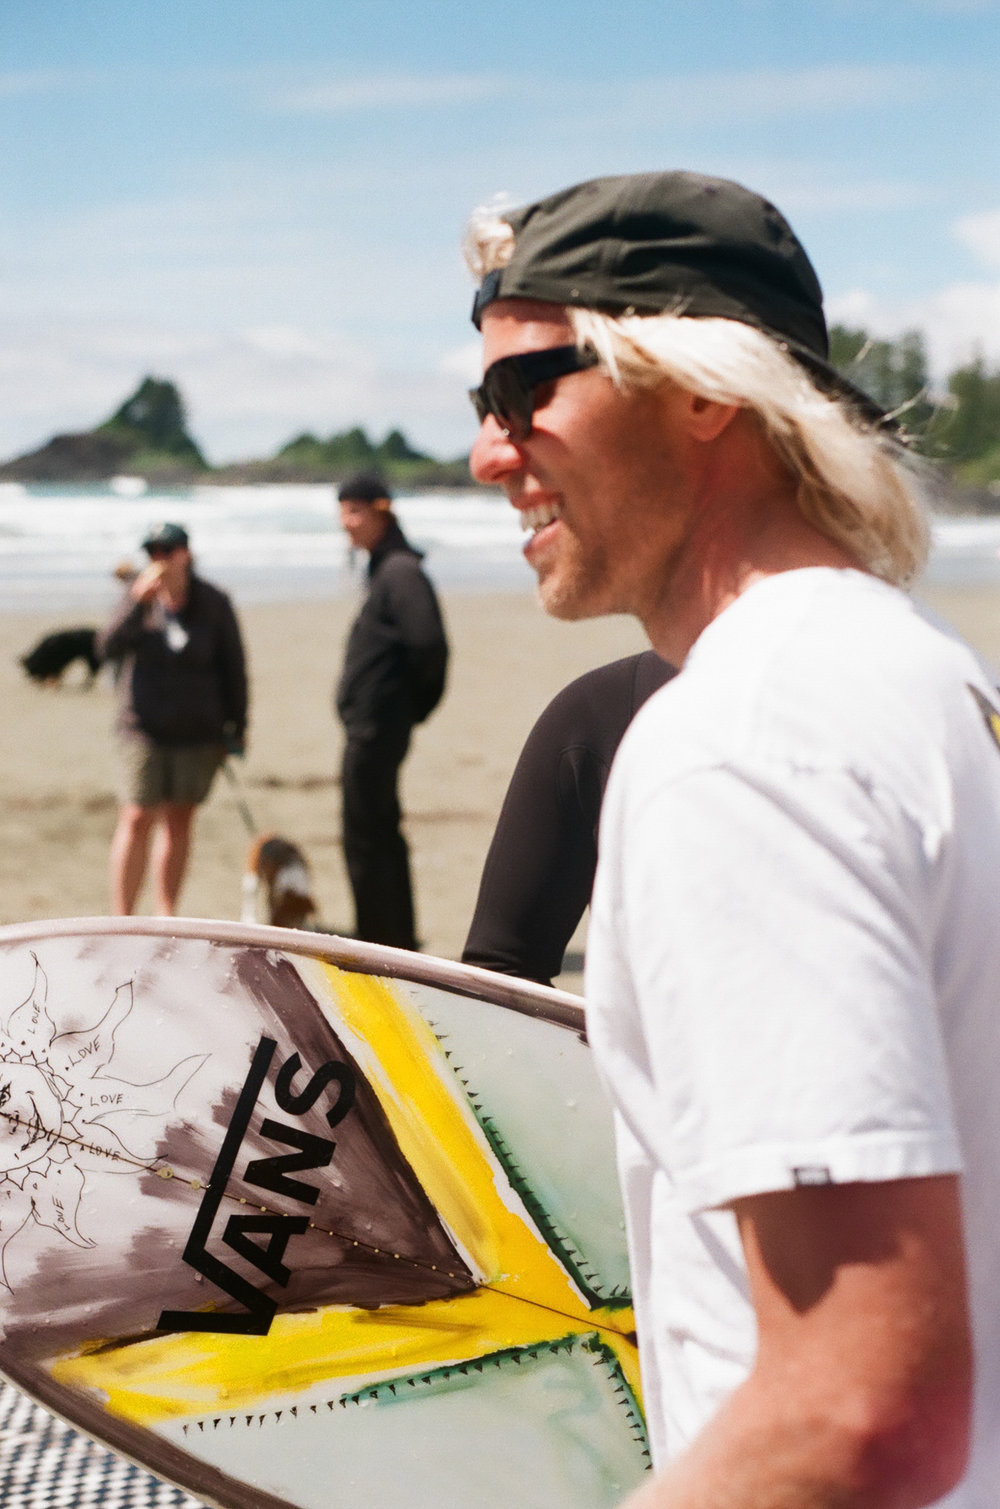 STAYWILD_VANS_TOFINO_PHOTOS_45.JPG